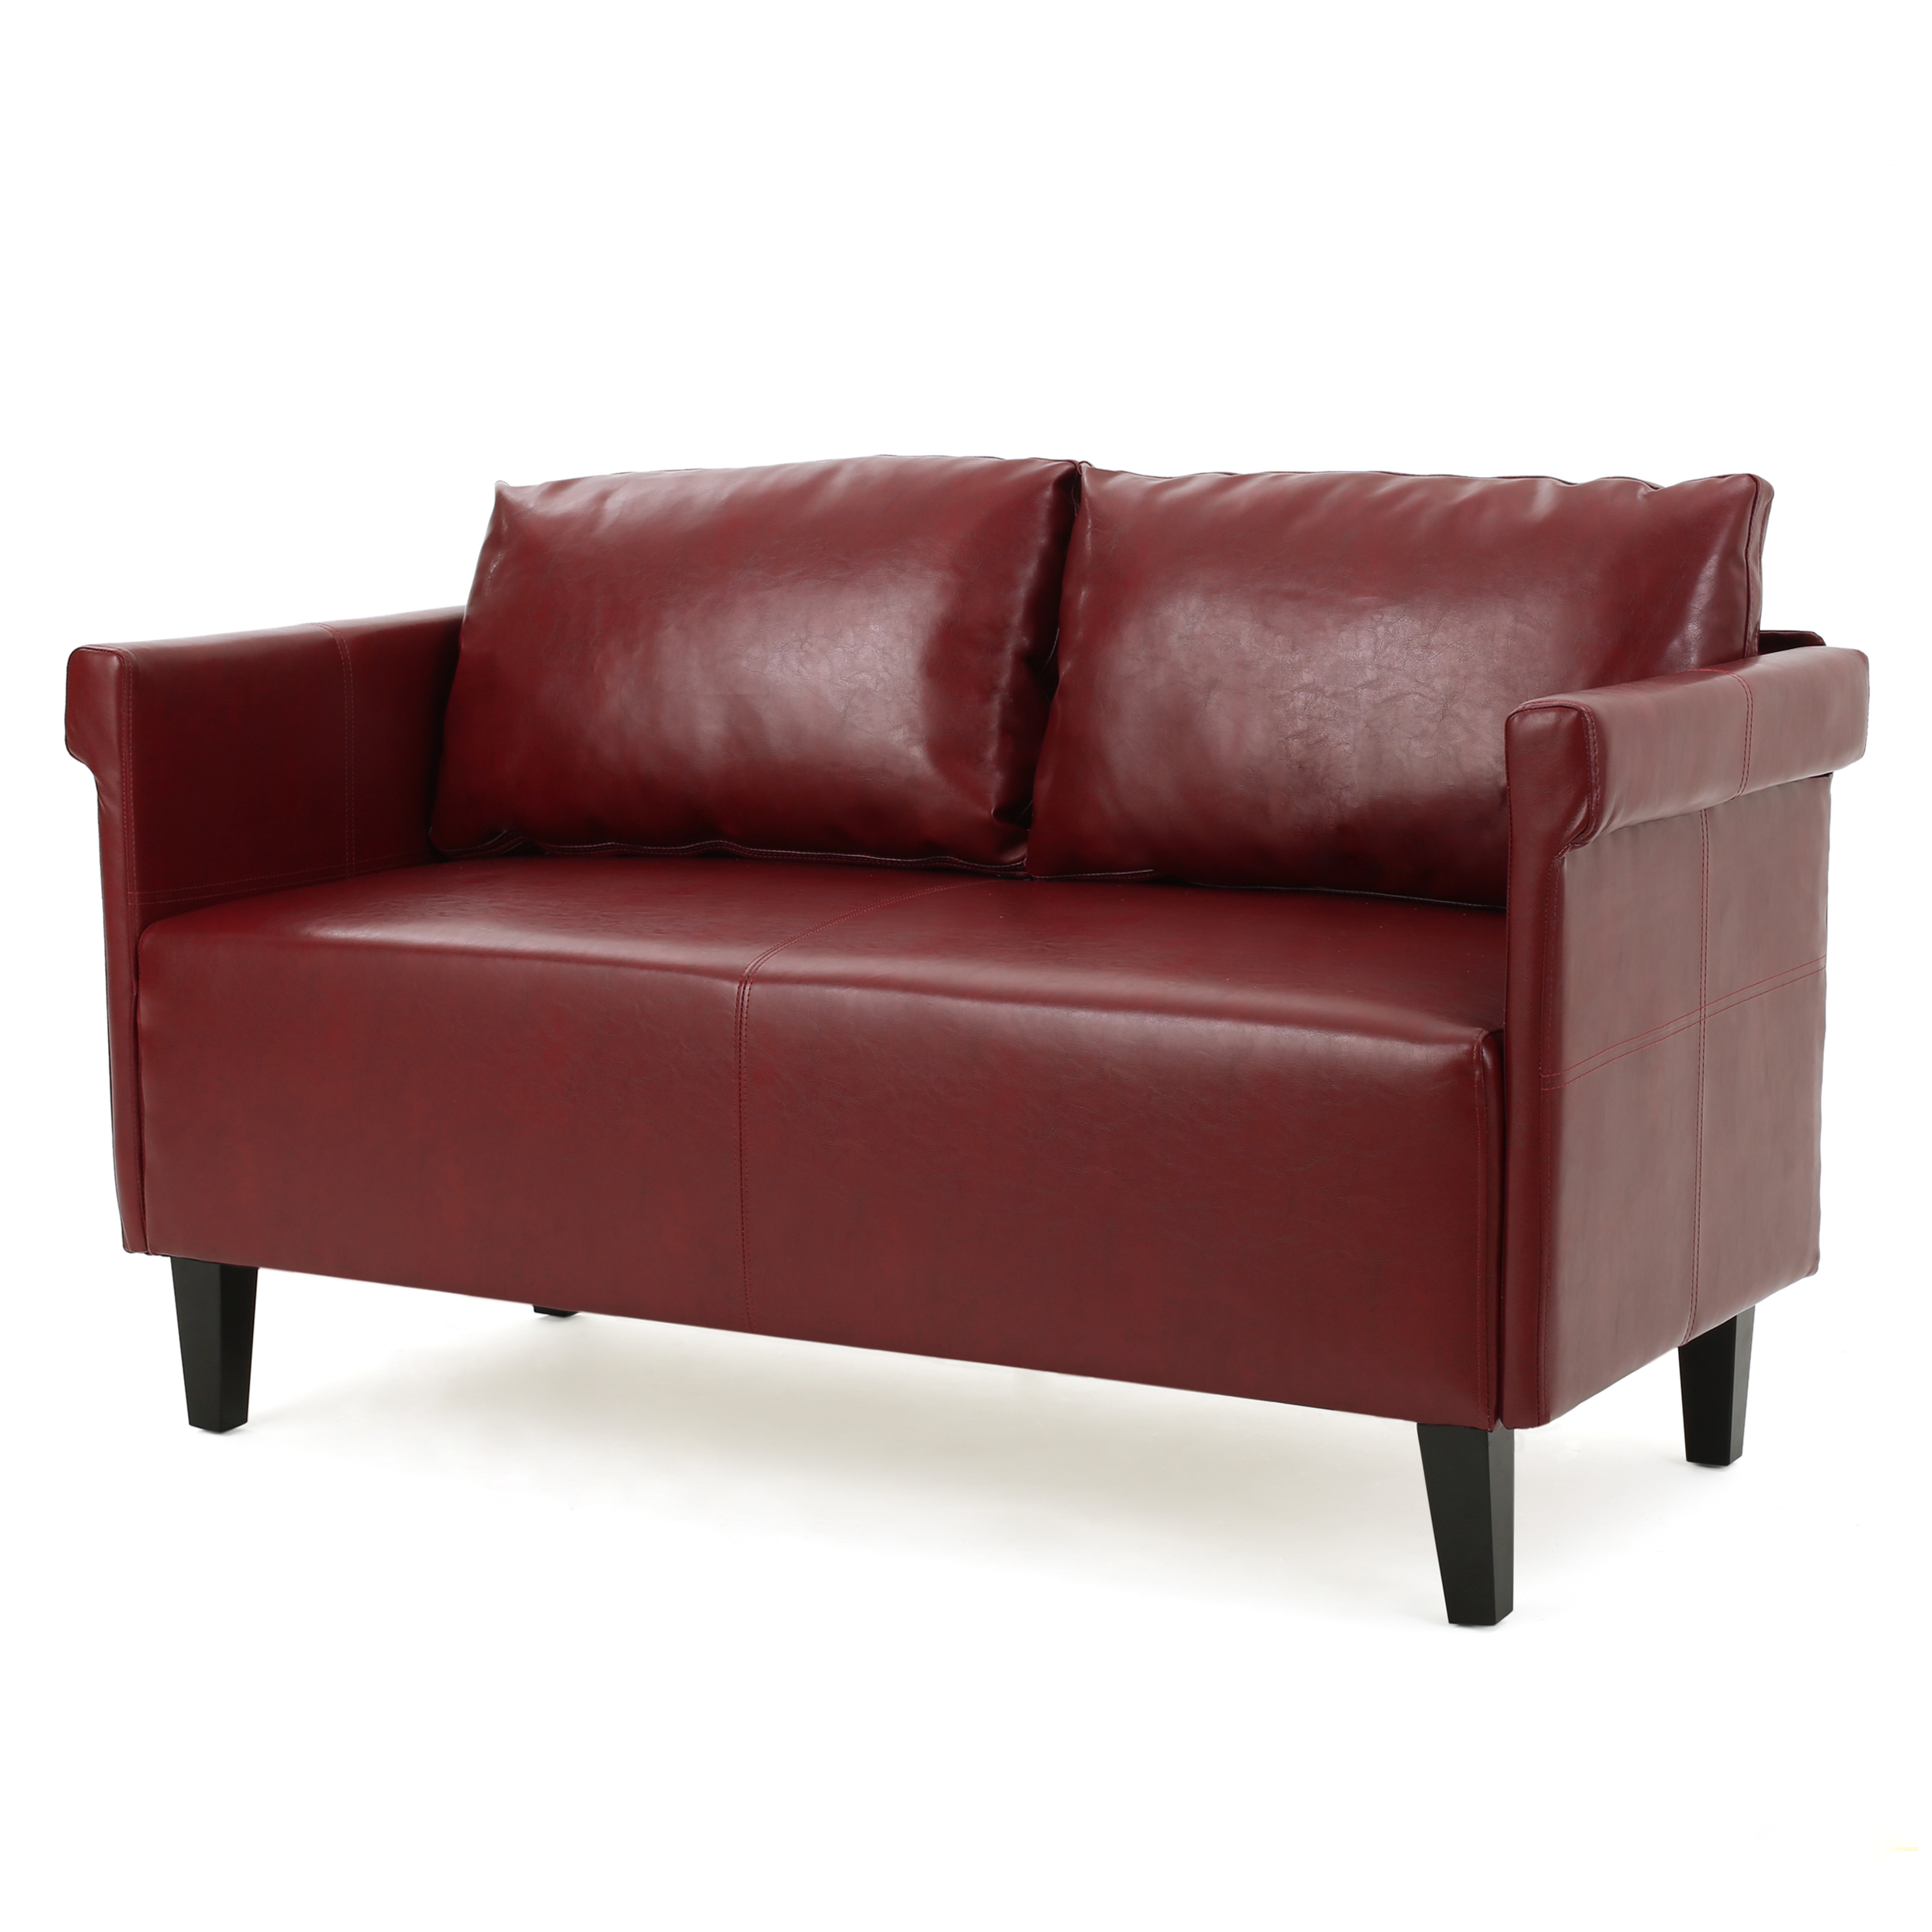 Harbison Leather Settee, Red